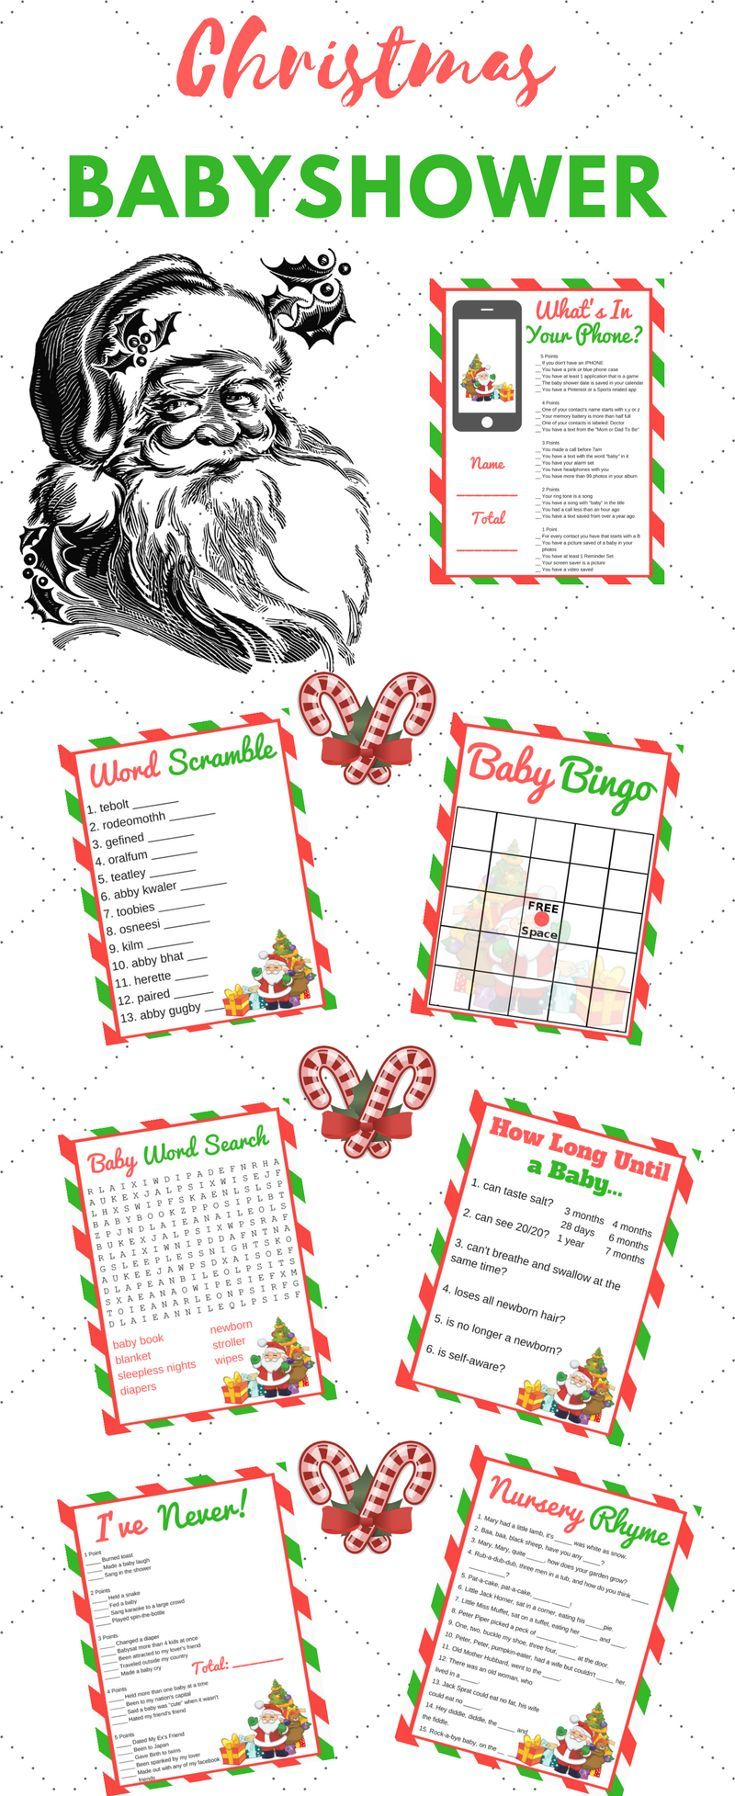 Christmas Baby Shower Printable Games Party Banners Pinterest